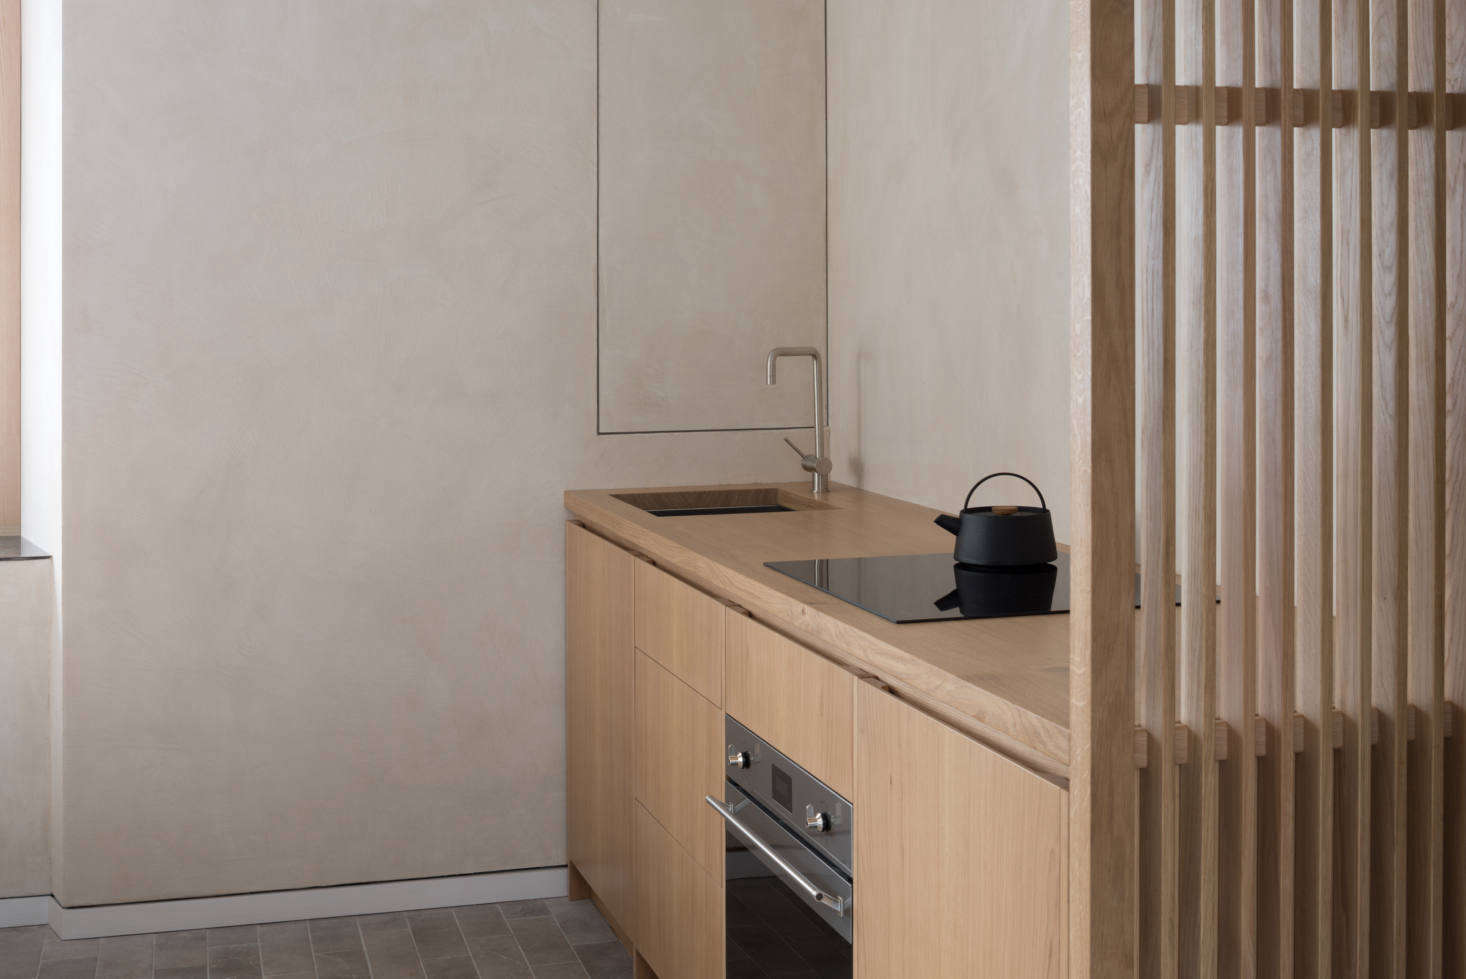 An oak screen neatly divides the kitchen from the bedroom.